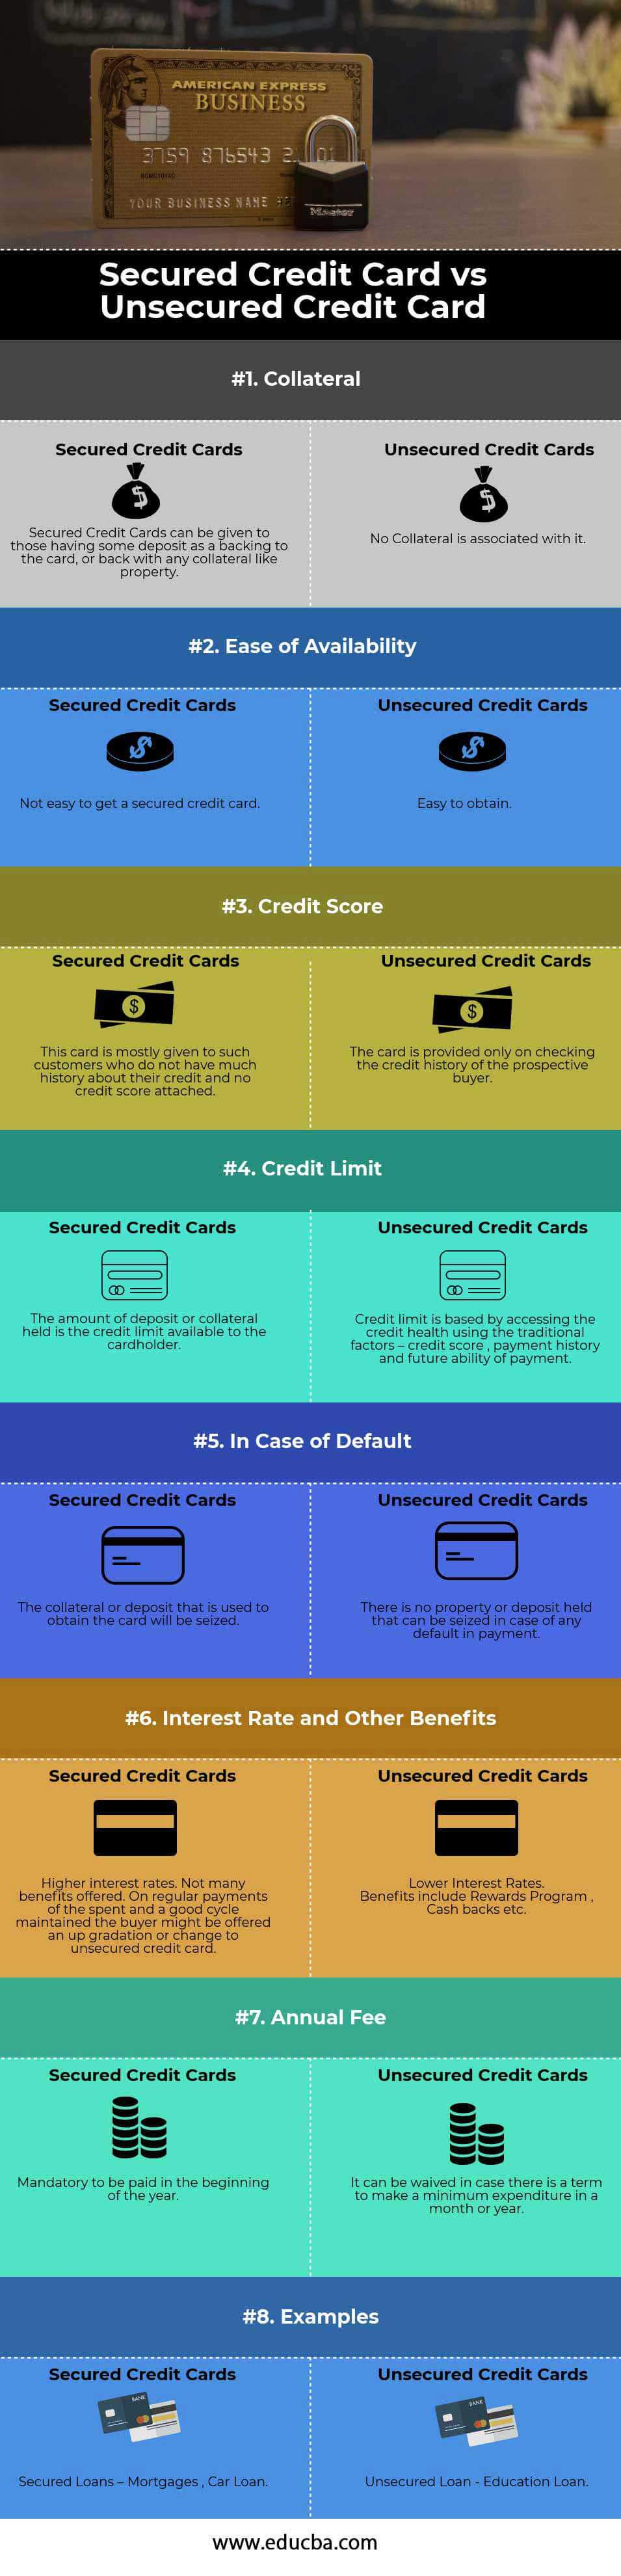 Secured Credit Card vs Unsecured Credit Card info